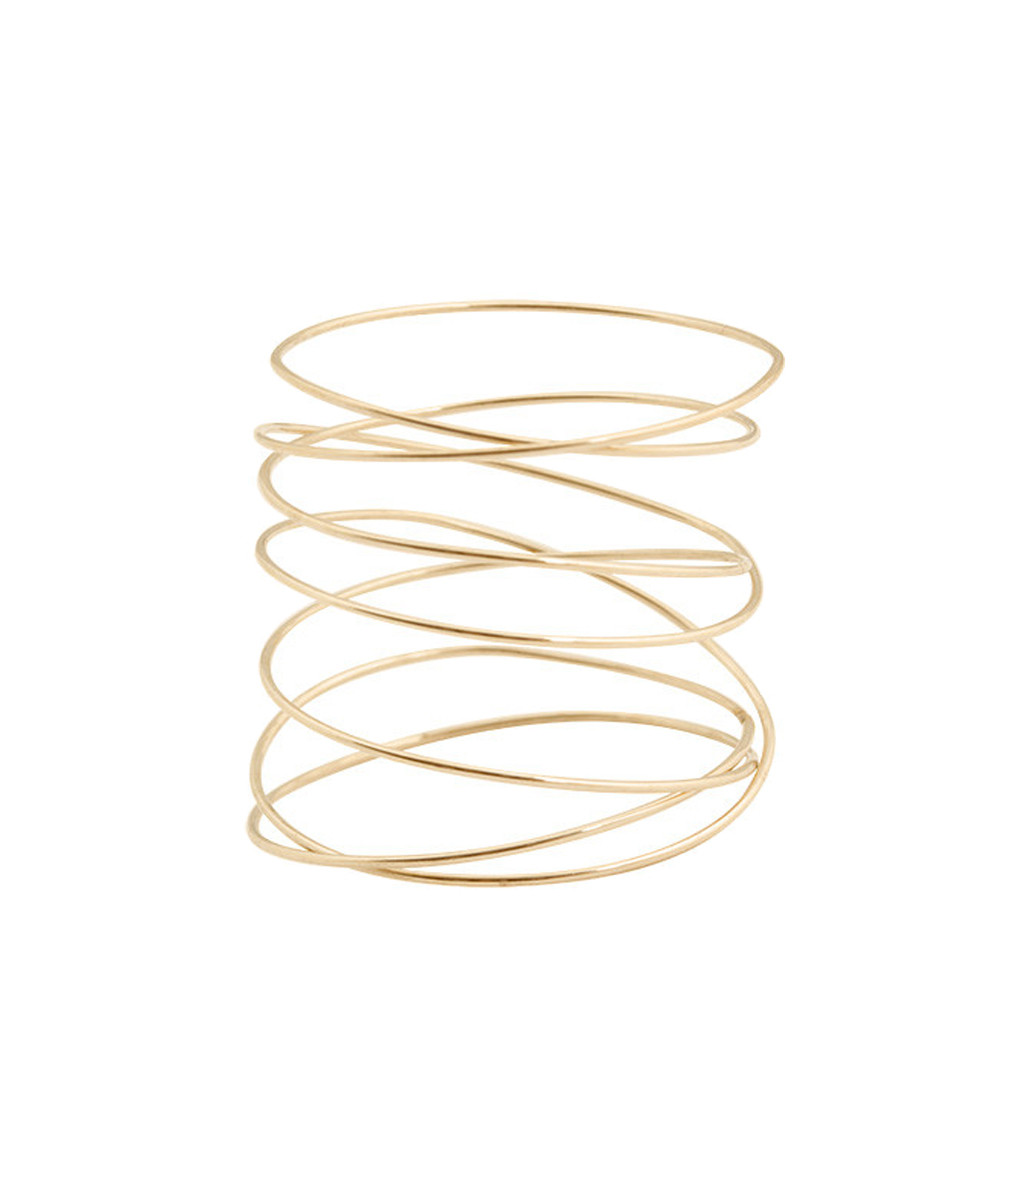 LSONGE - Bague Sublime Spirale Or